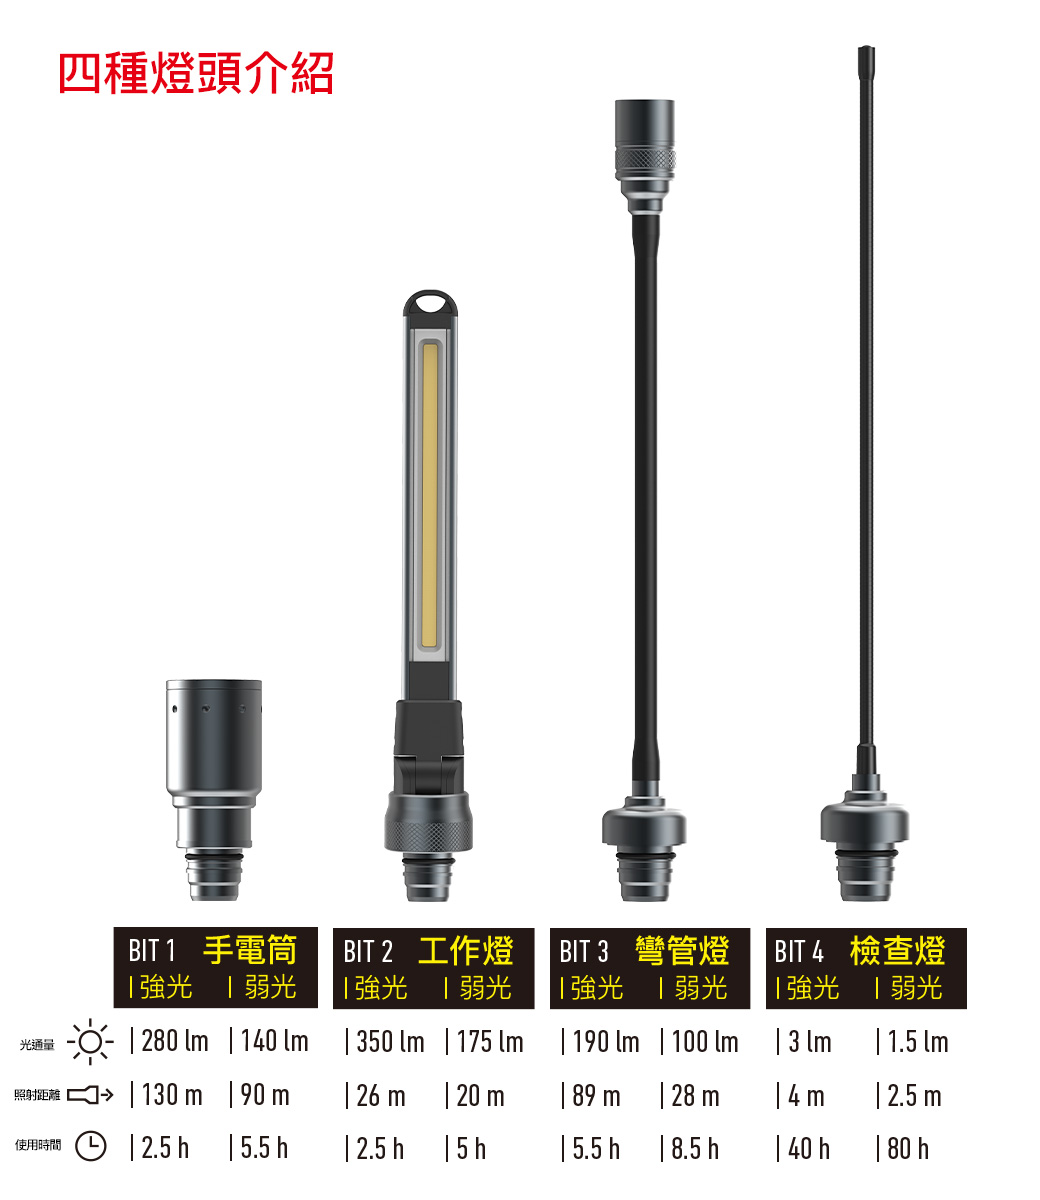 LED LENSER 多功能充電式手電筒 Workers Friend 502136